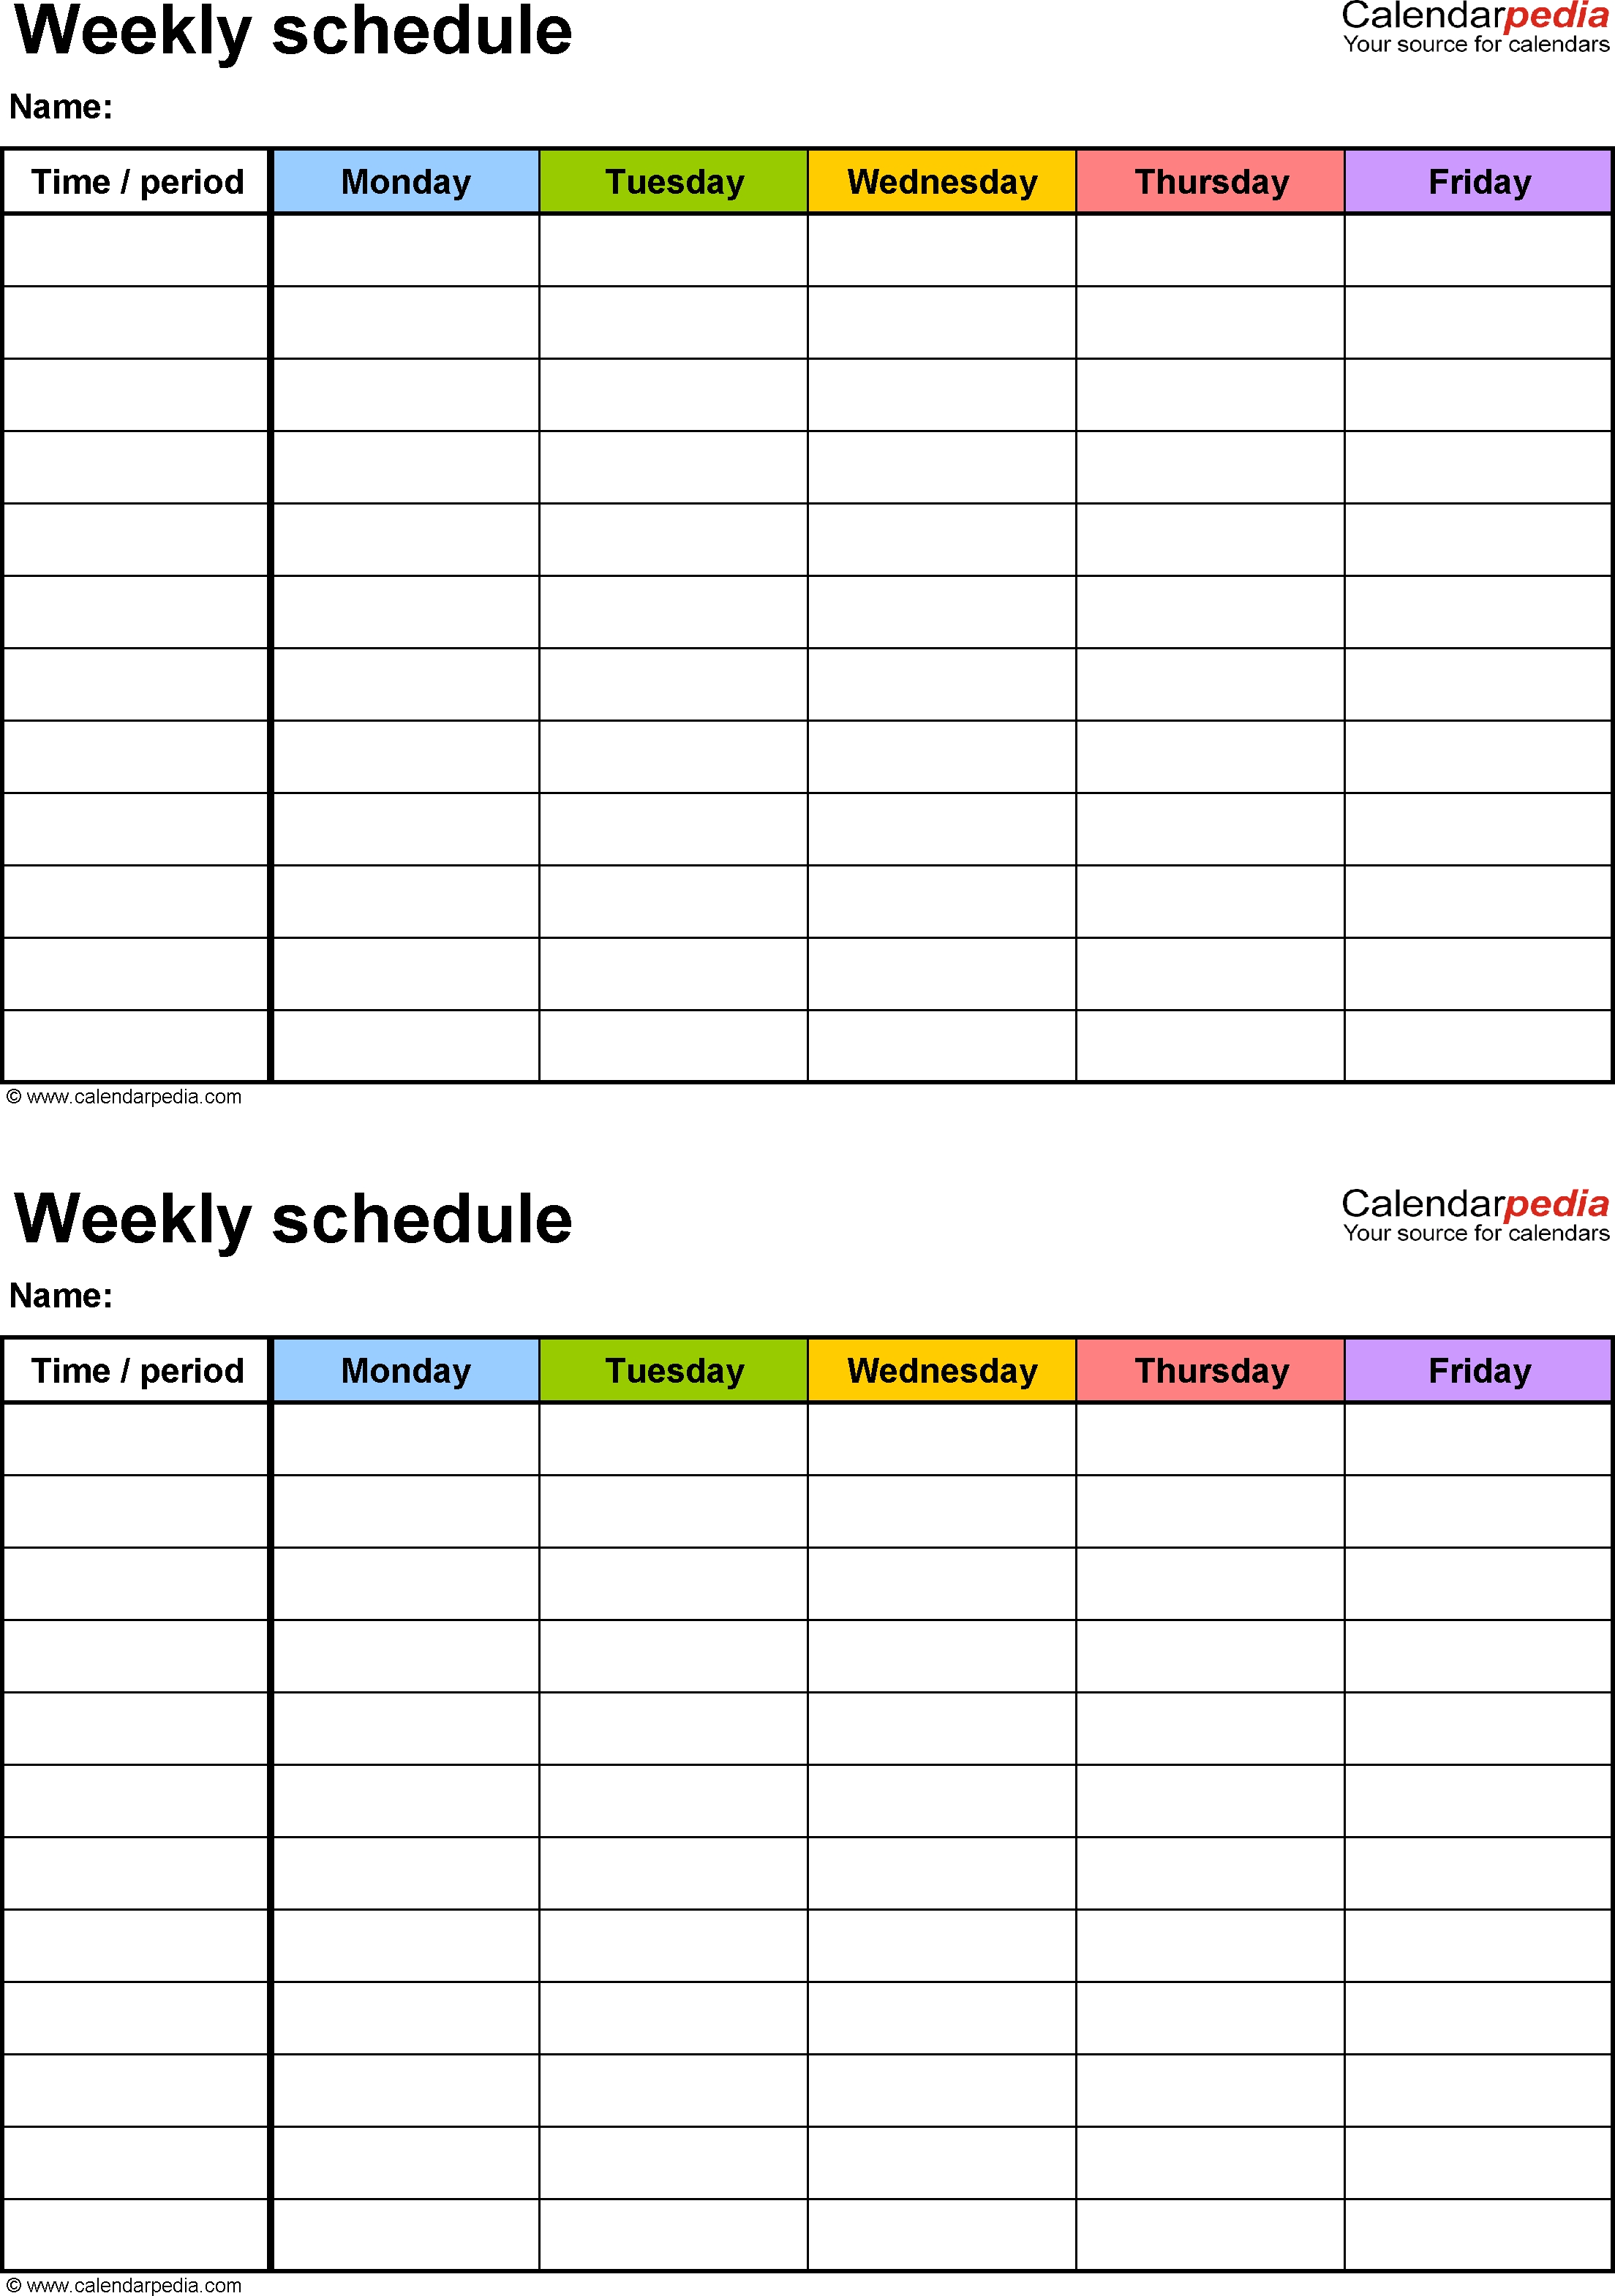 Weekly Schedule Template For Pdf Version 3: 2 Schedules On  Editable Weekly Schedule